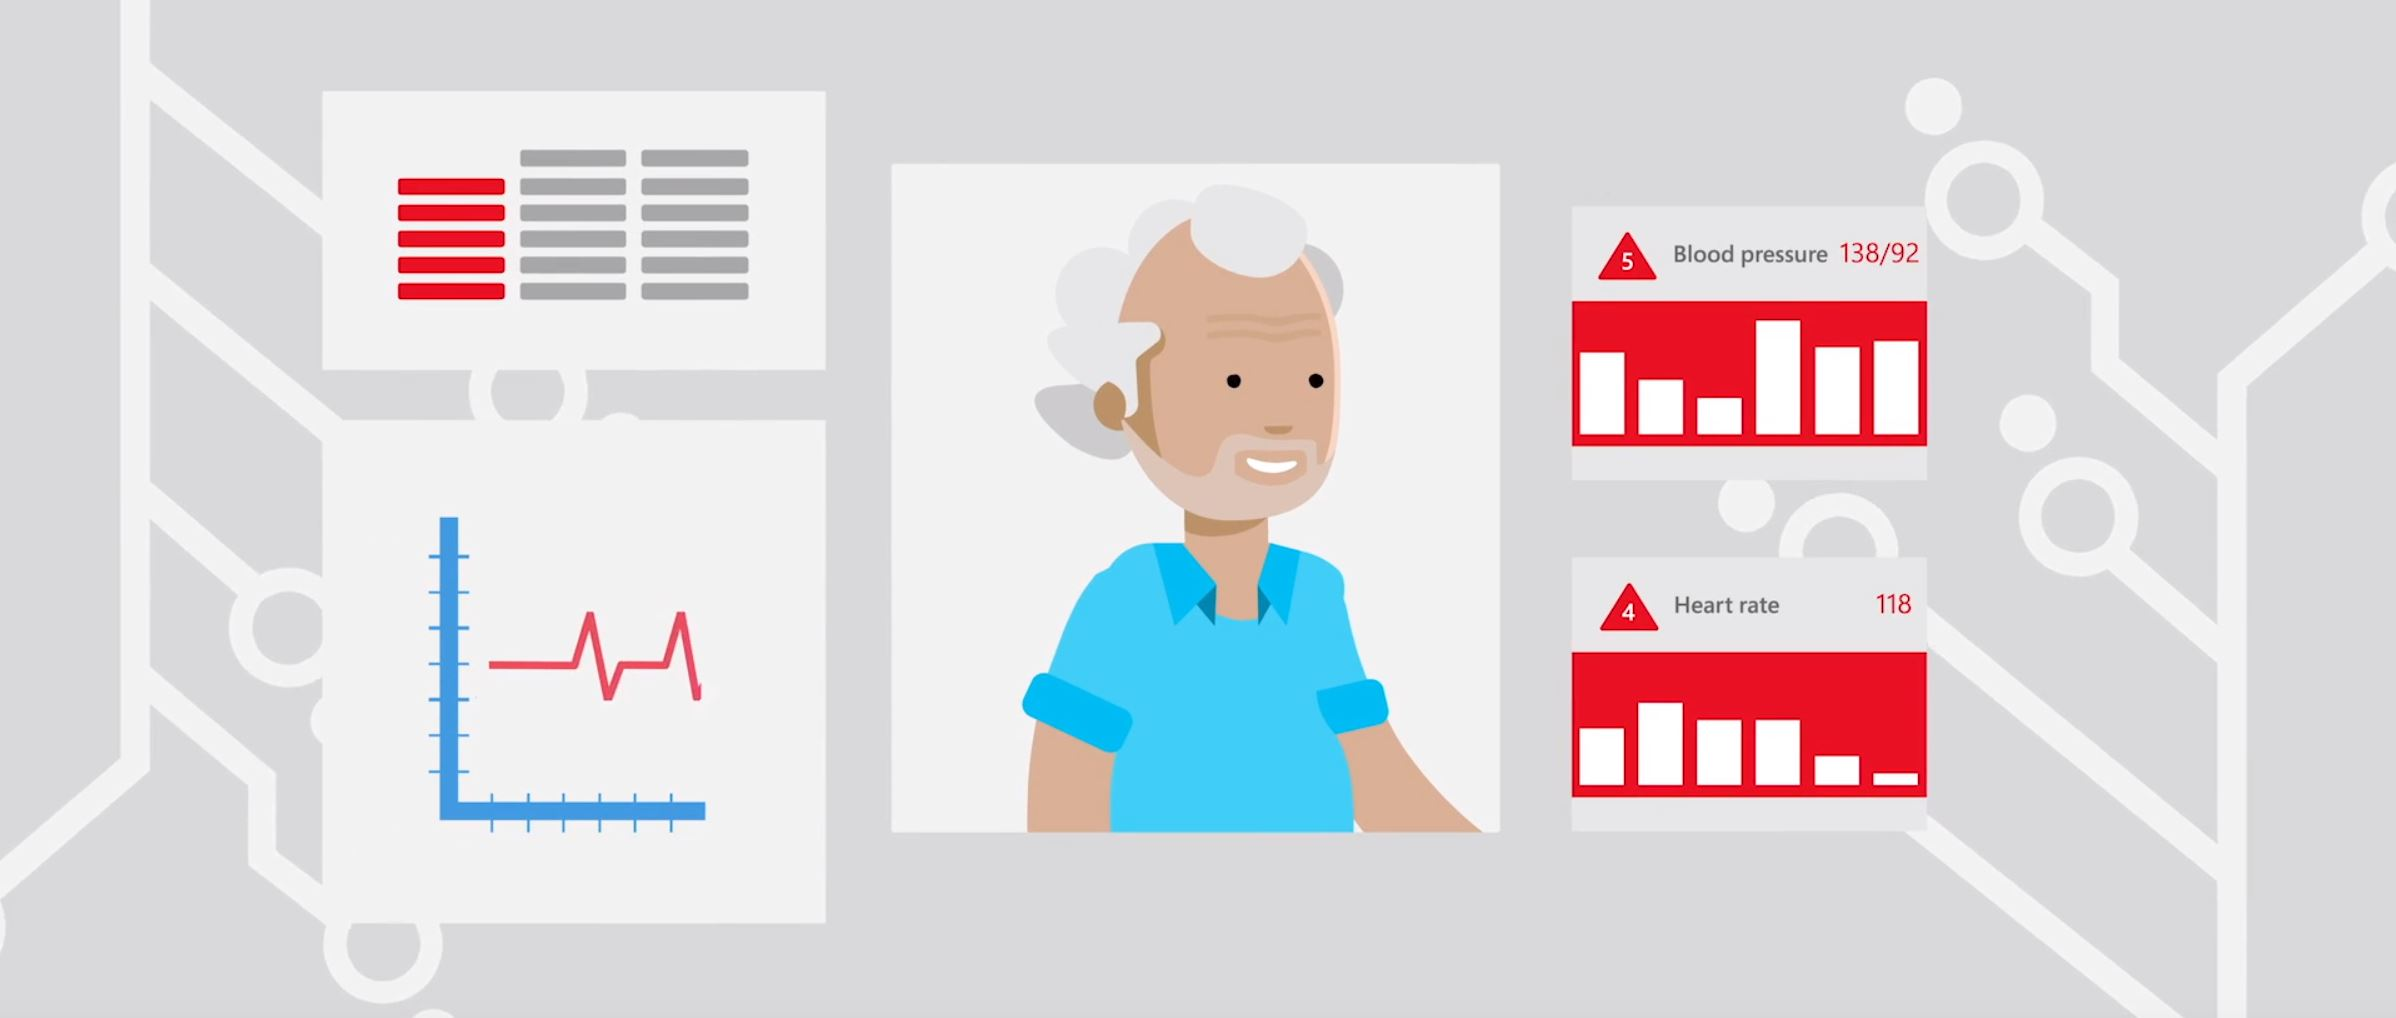 2D character animation image 7 for Microsoft Innovation - health project